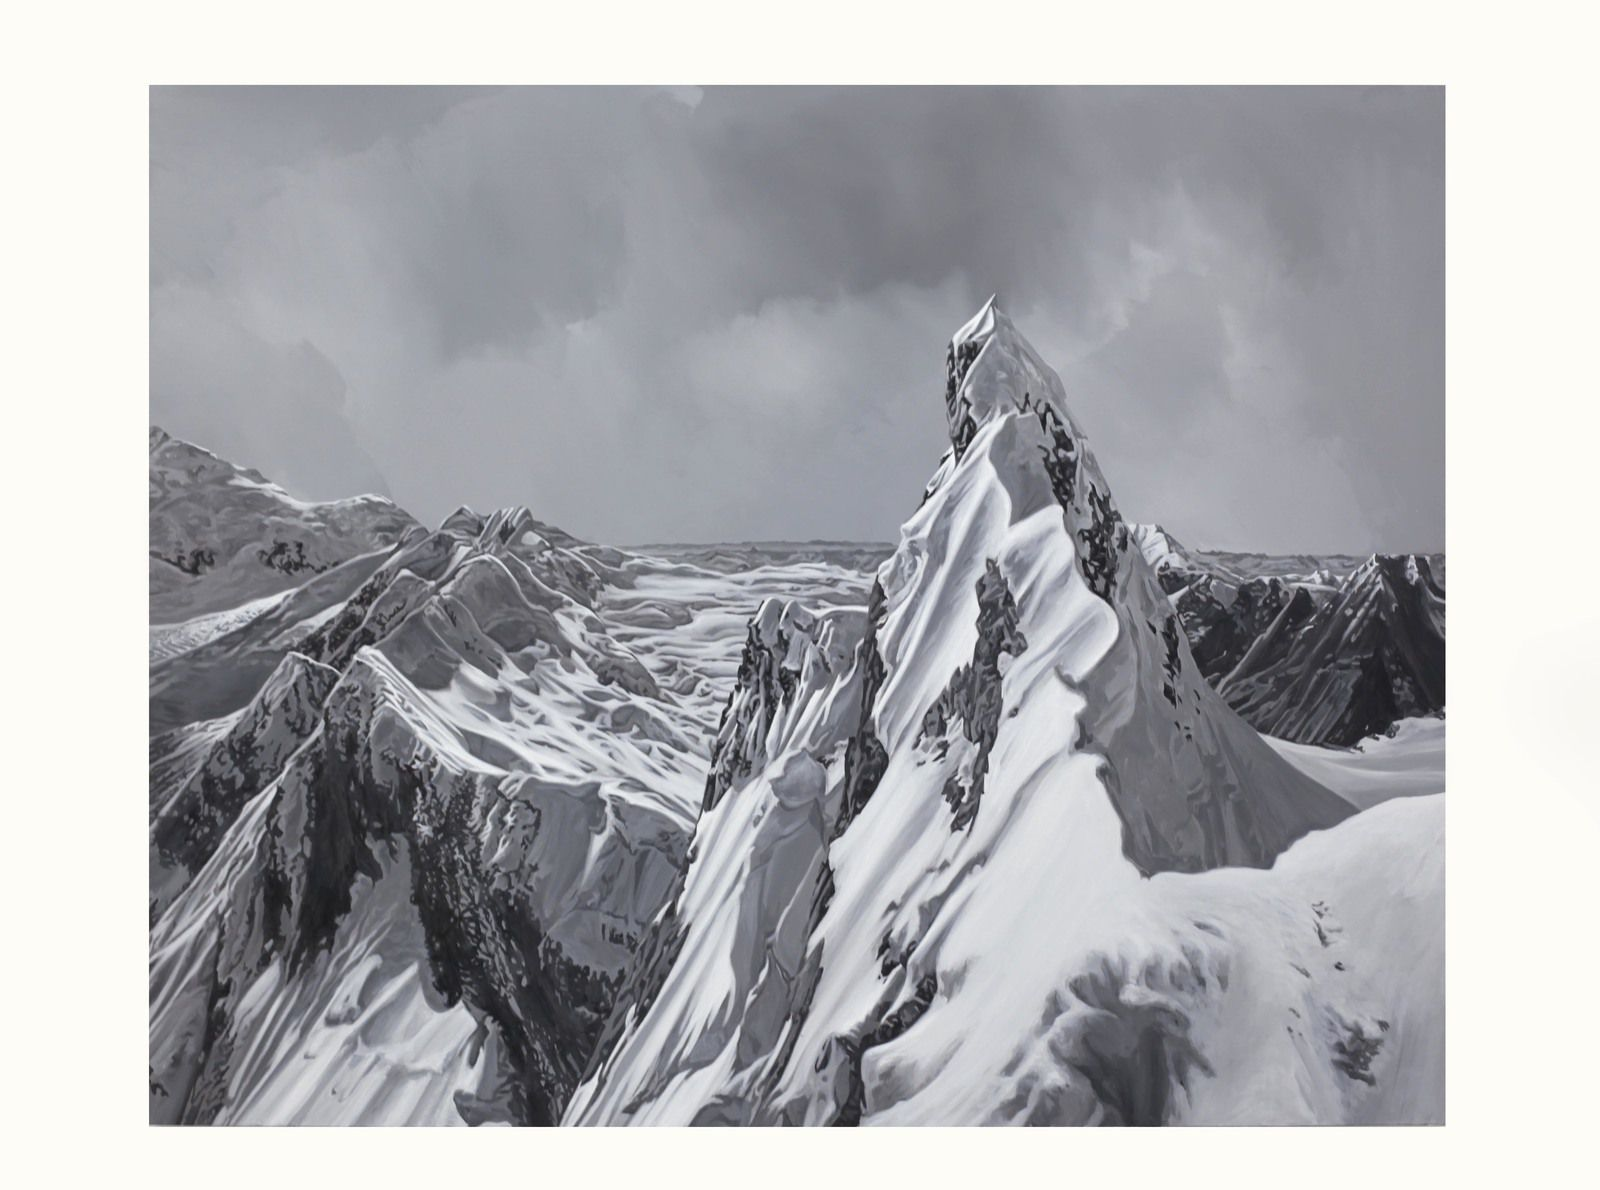 """Mont-Blanc 5"", 2018 de Hervé HEUZÉ - Courtesy Galerie RICHARD - PARIS © Photo Éric Simon"